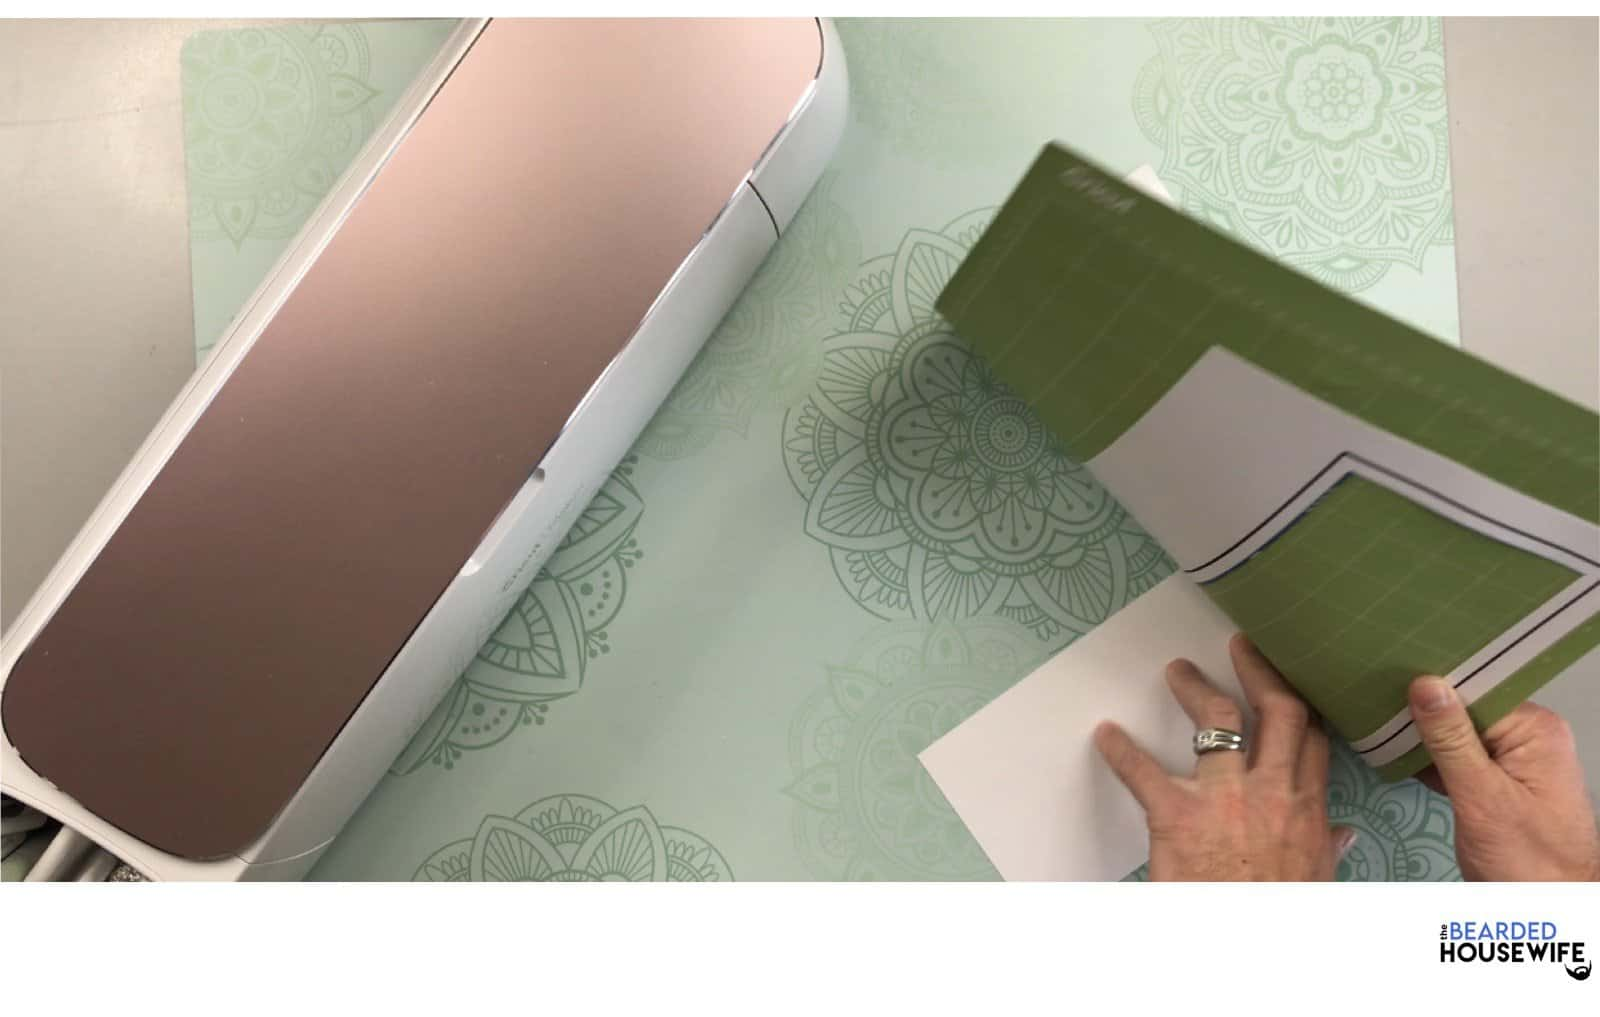 remove your card from the mat by curling the mat away from the cardstock